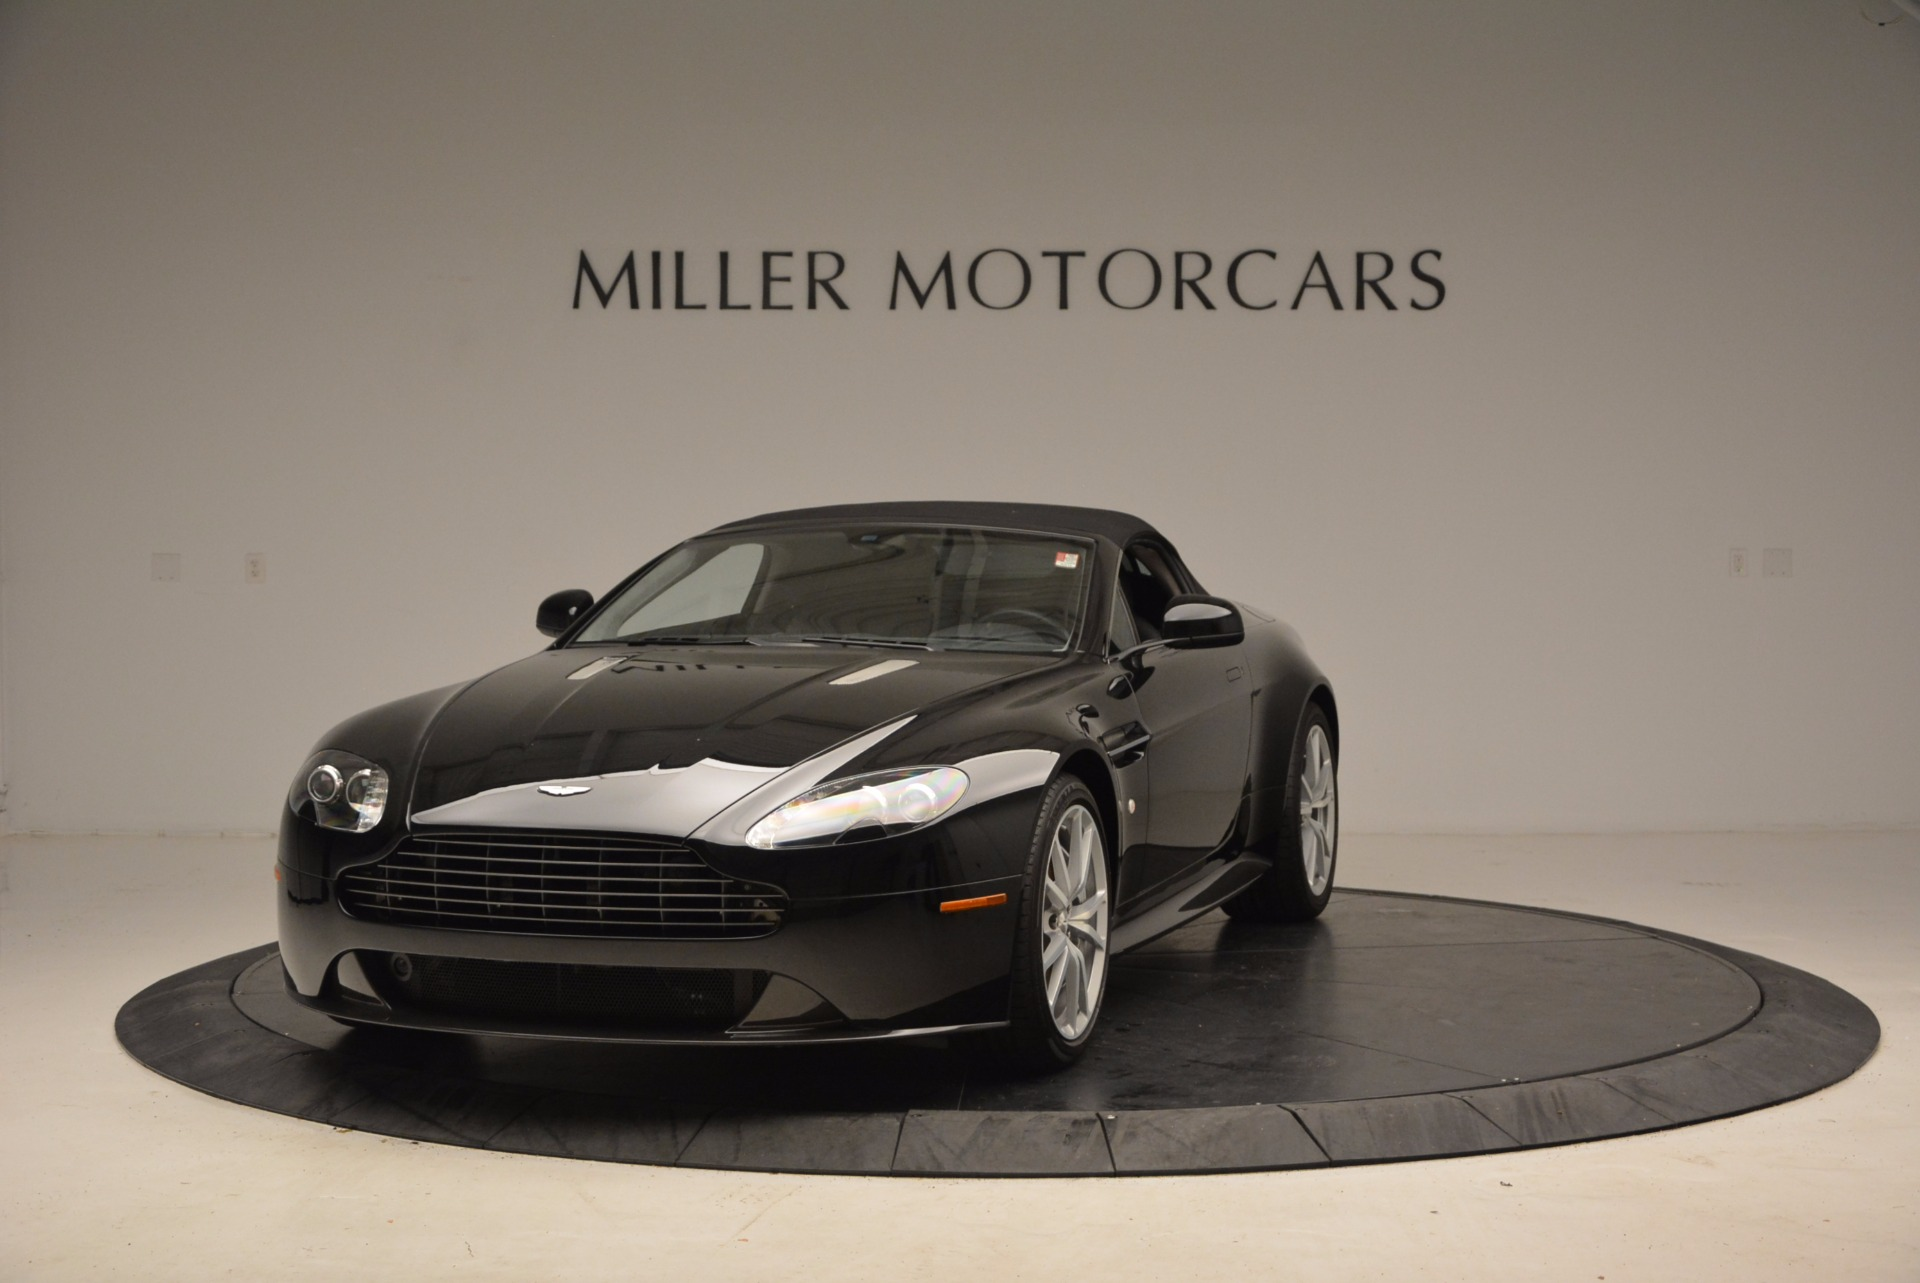 New 2016 Aston Martin V8 Vantage Roadster For Sale In Westport, CT 1546_p13